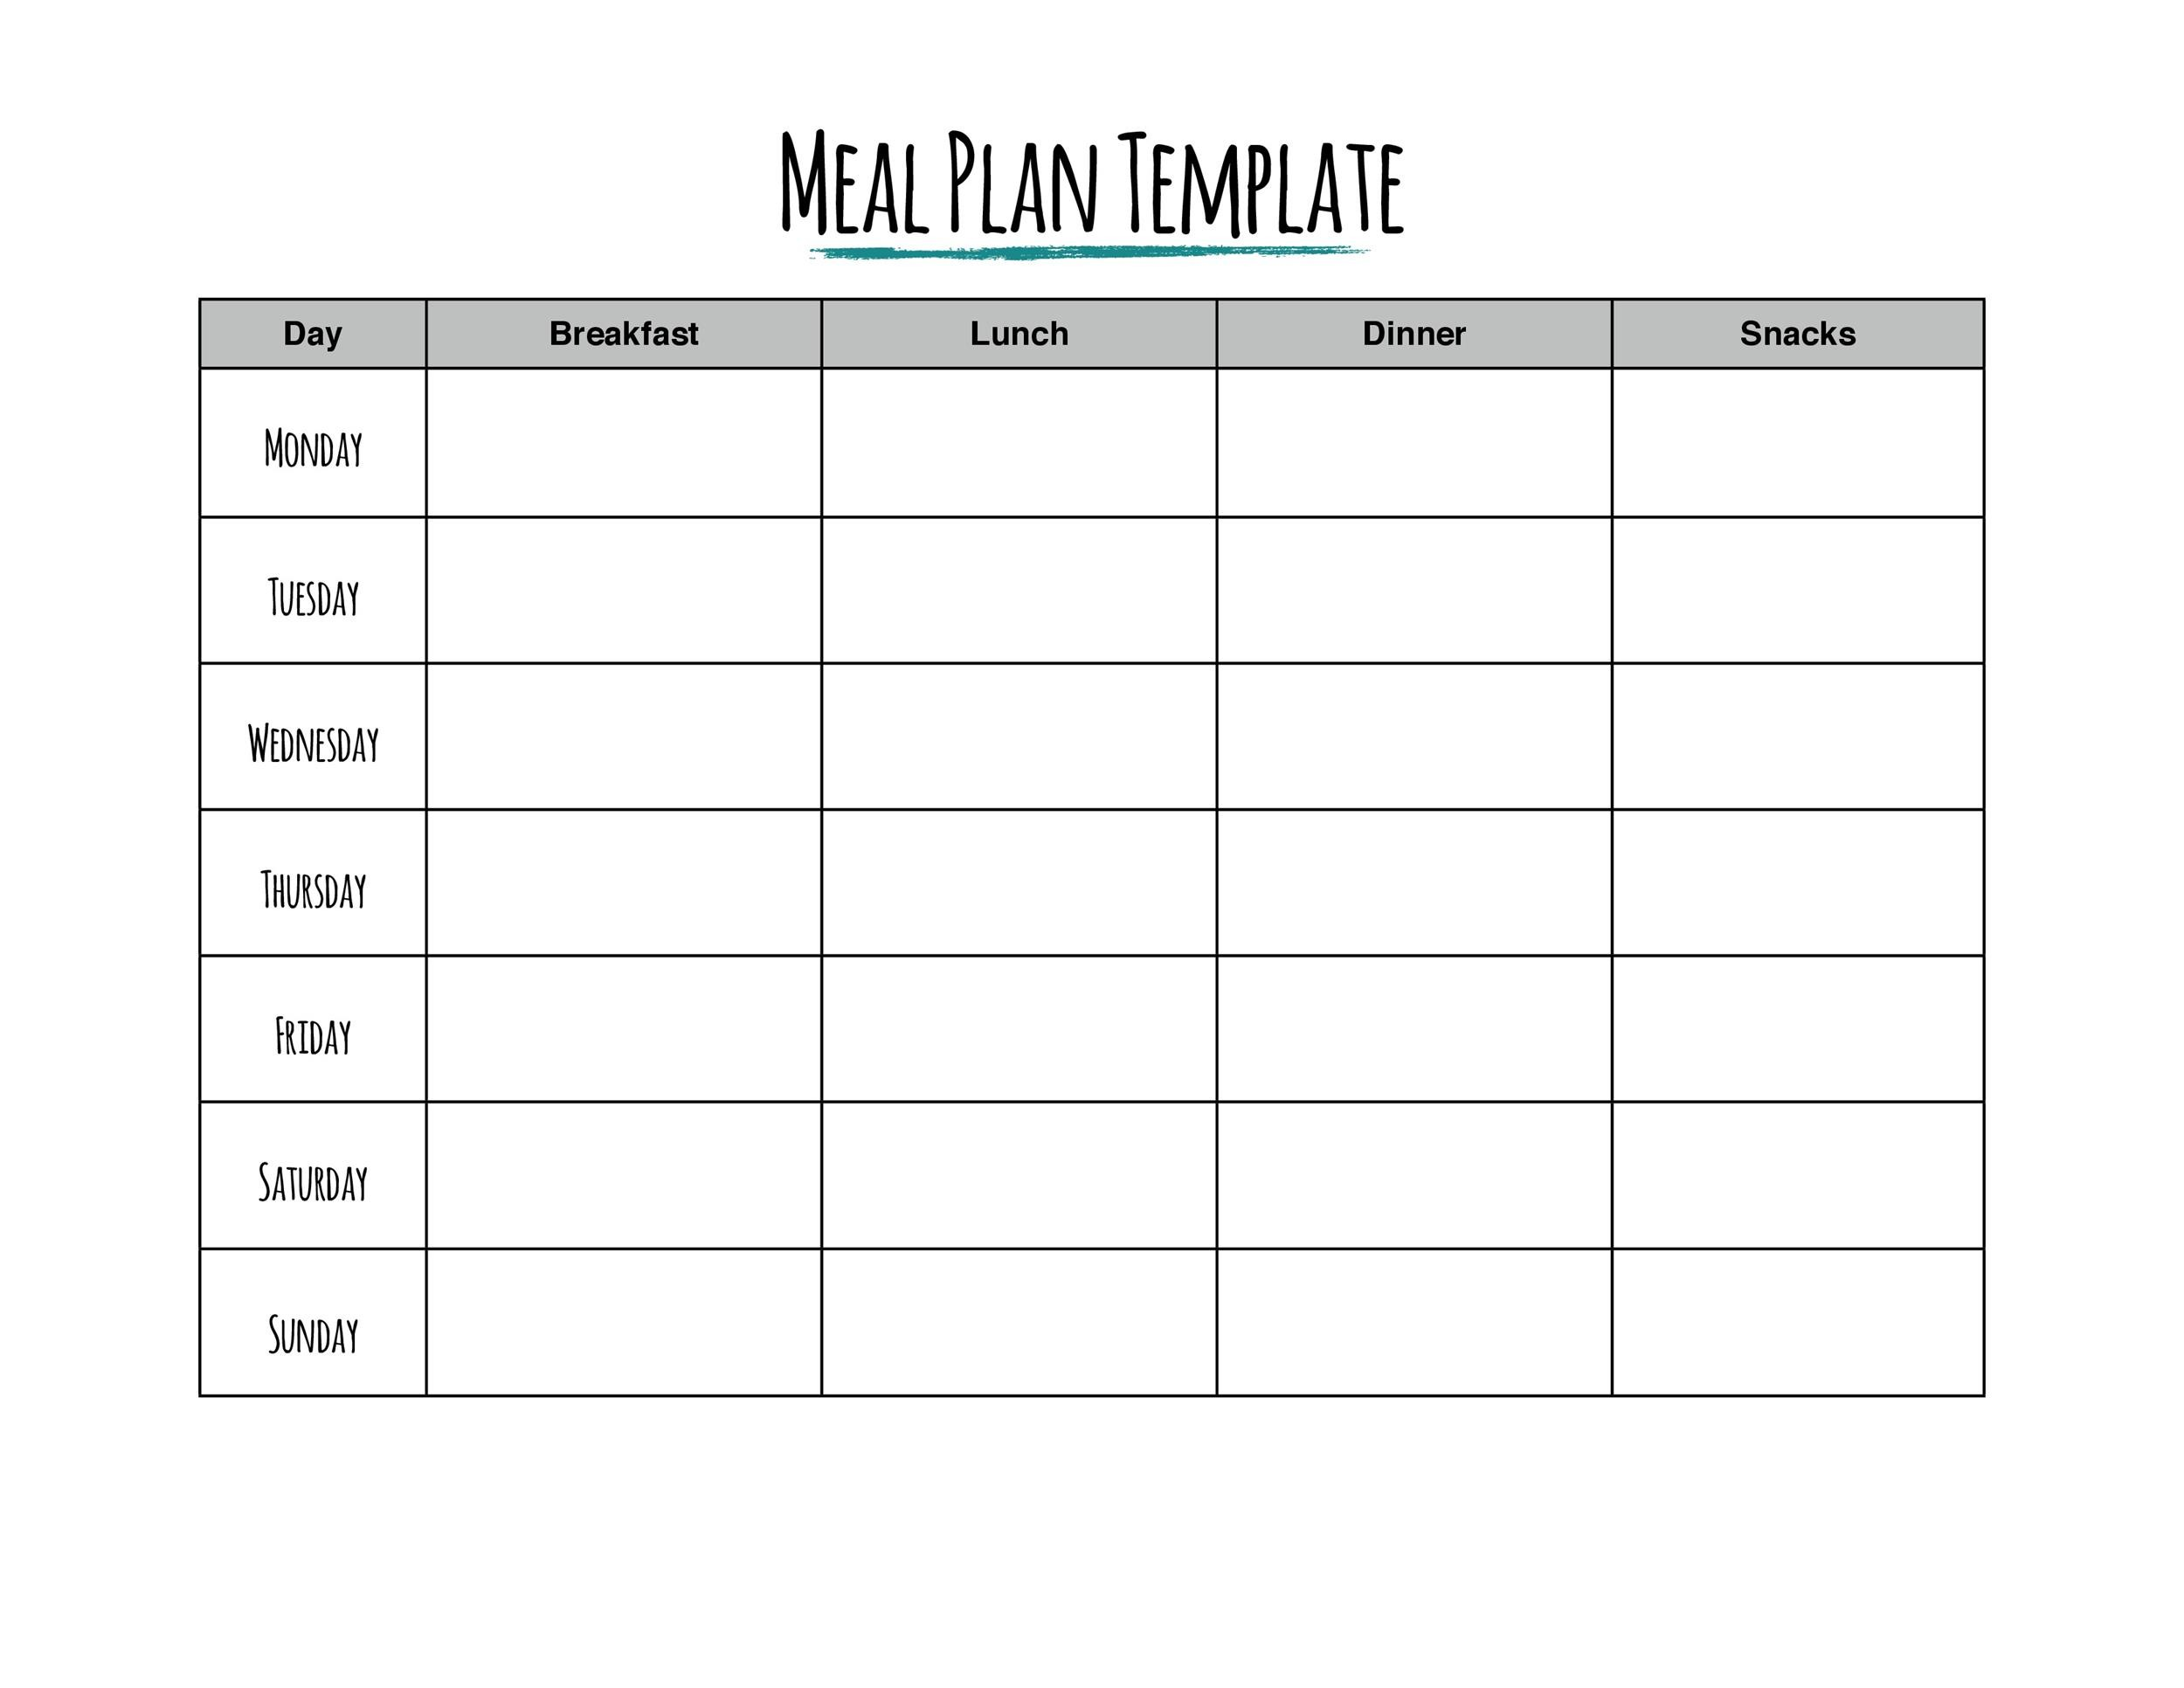 Nutrition Plan Template  BesikEightyCo